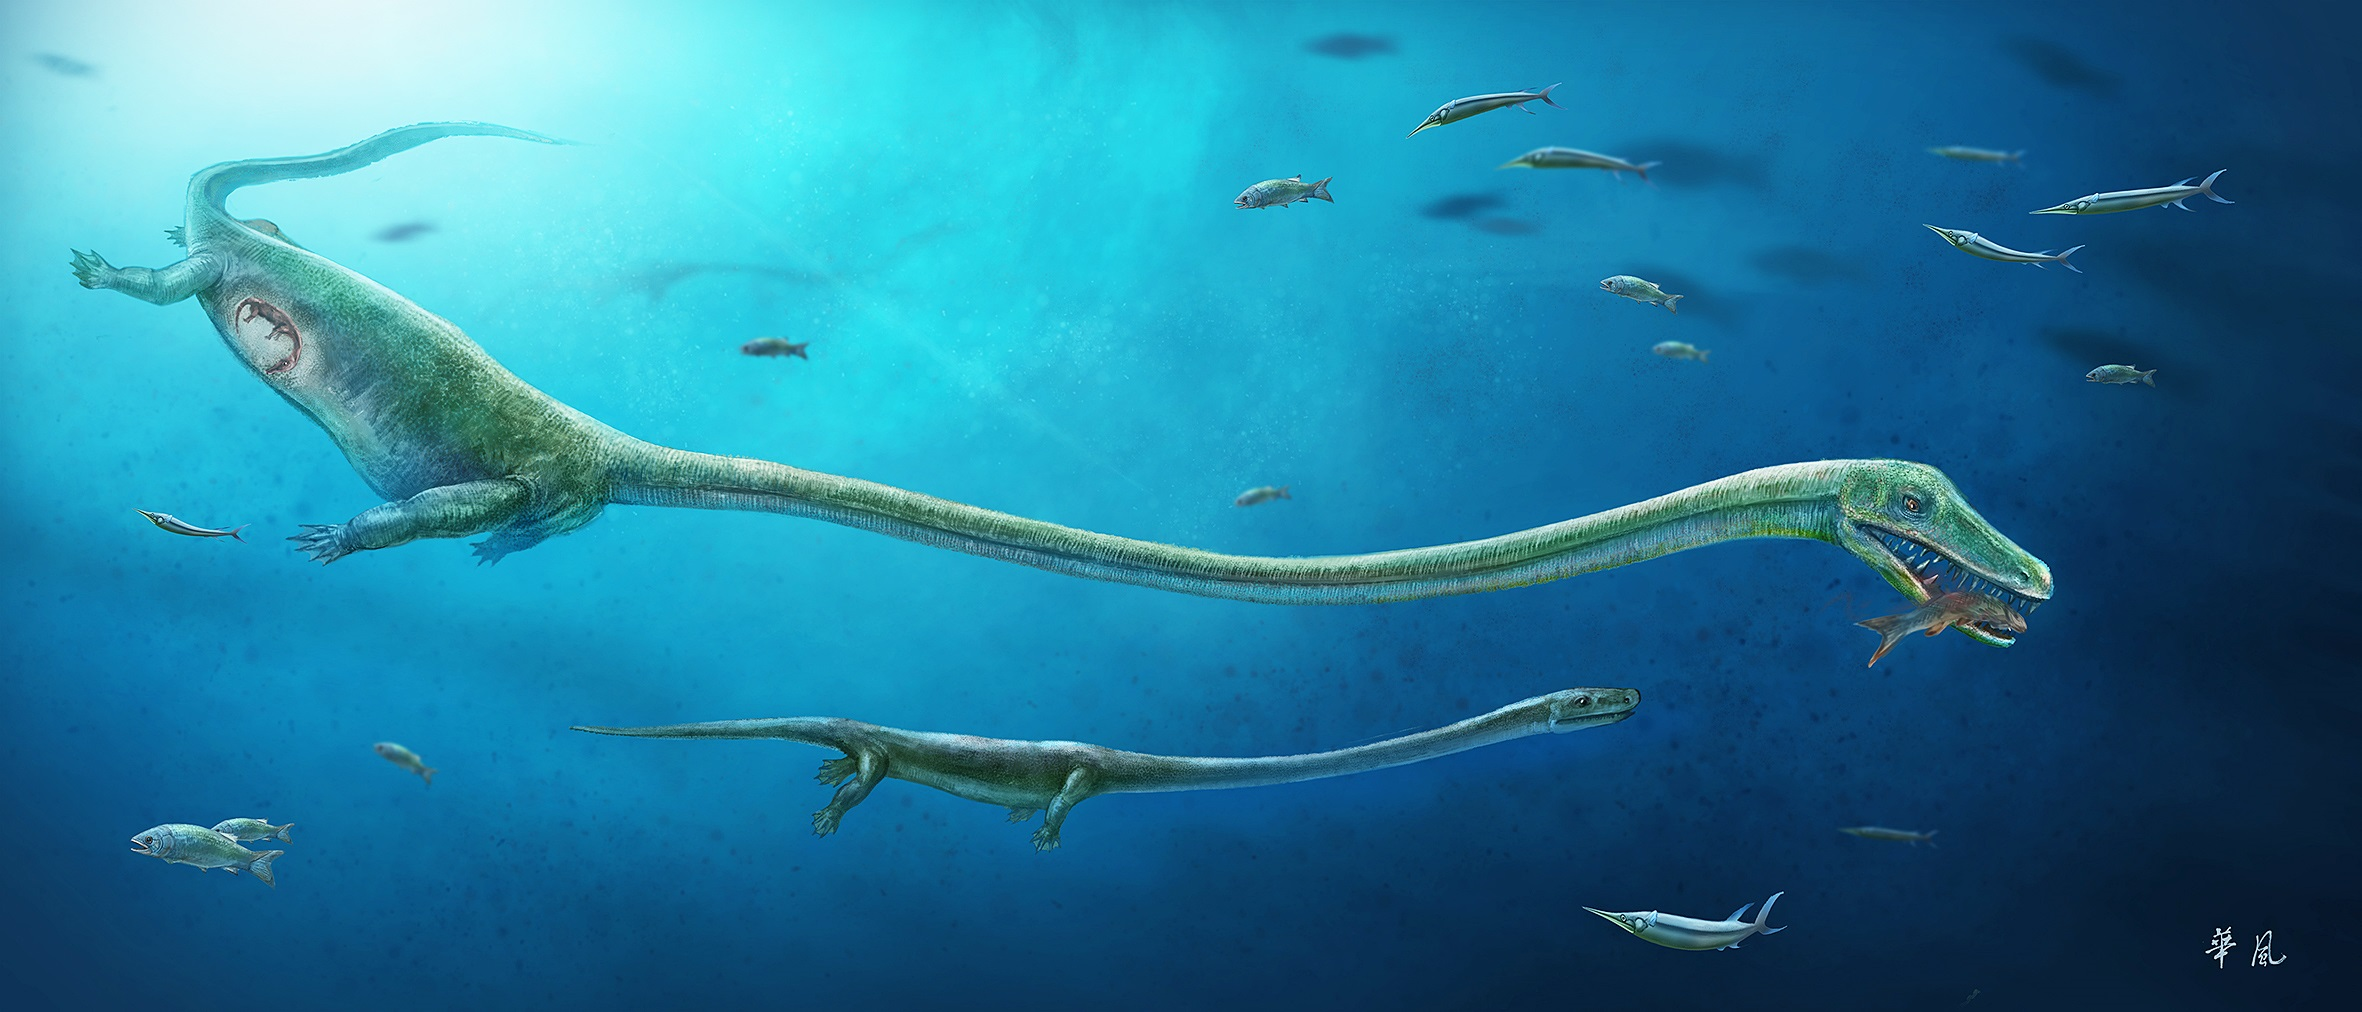 An artist's rendition of a pregnant dinocephalosaurus biting a fish